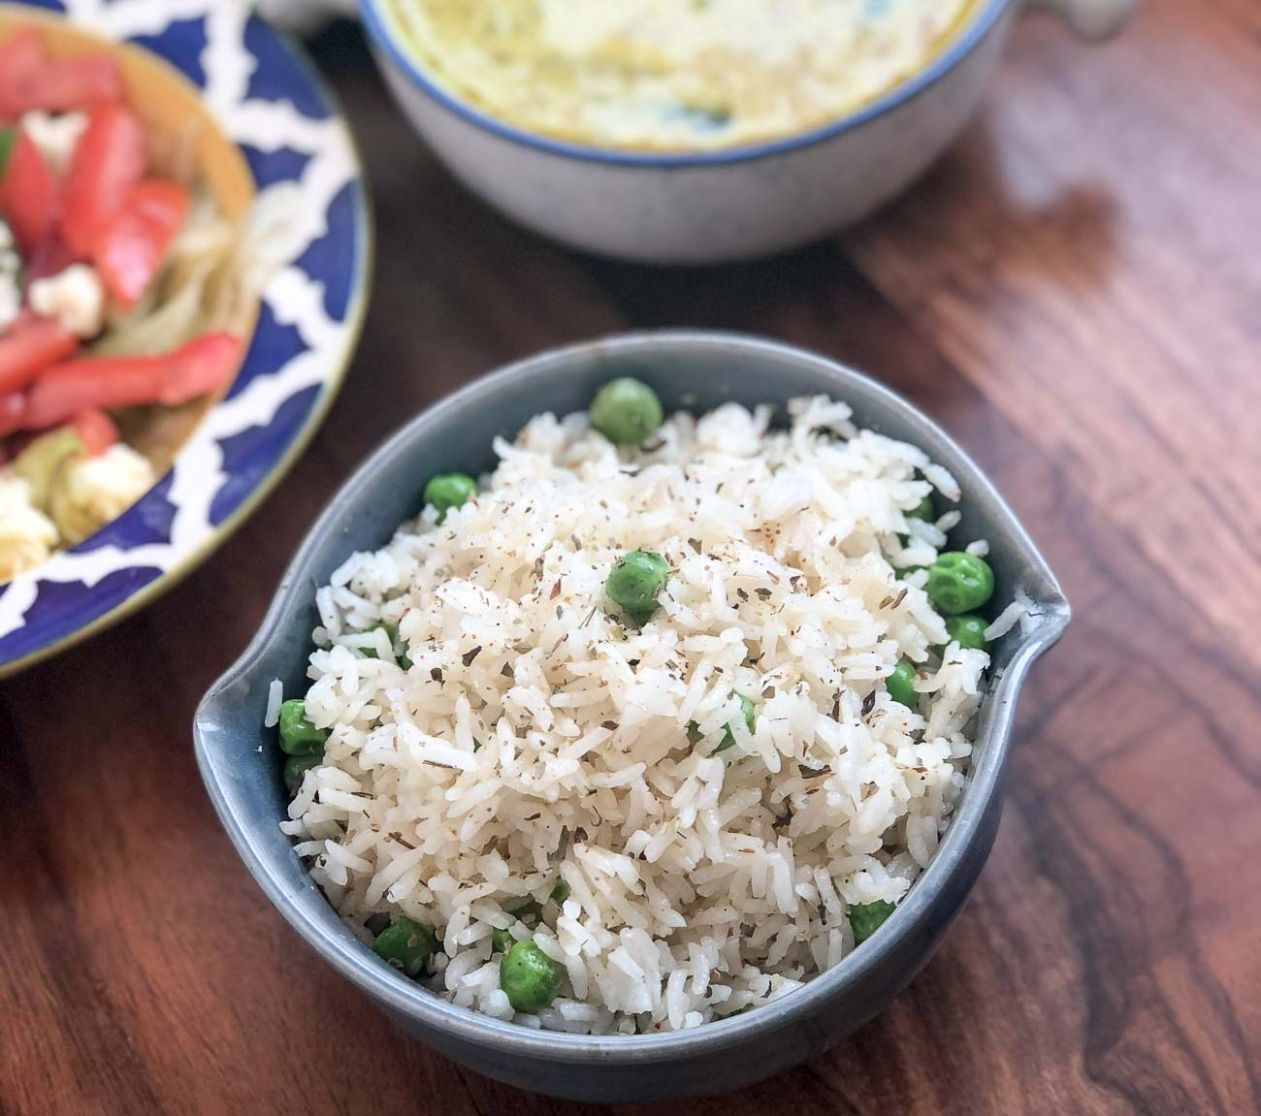 Herbed Buttered Rice Recipe With Green Peas - Recipes Rice And Peas